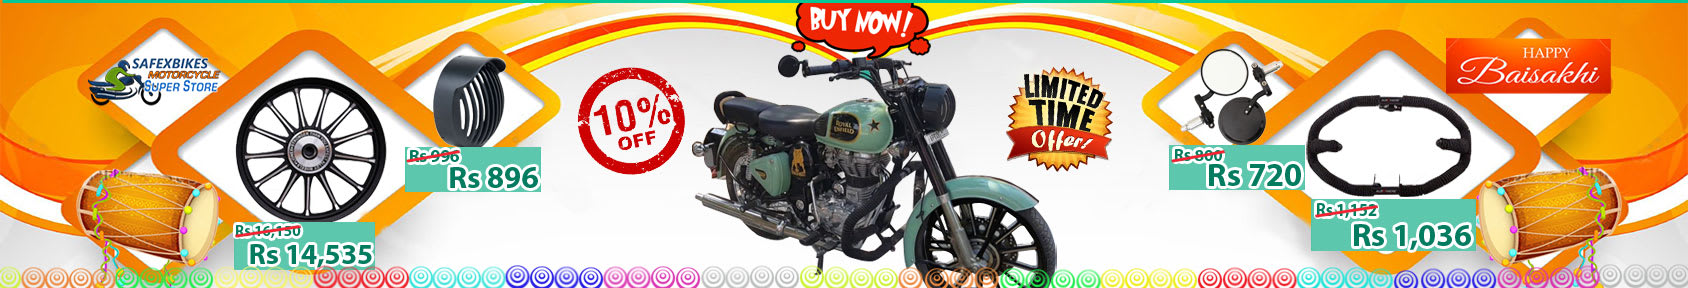 Special offers on Genuine Motorcycle Spare Parts And Accessories - Get 10 percent off on Baisakhi